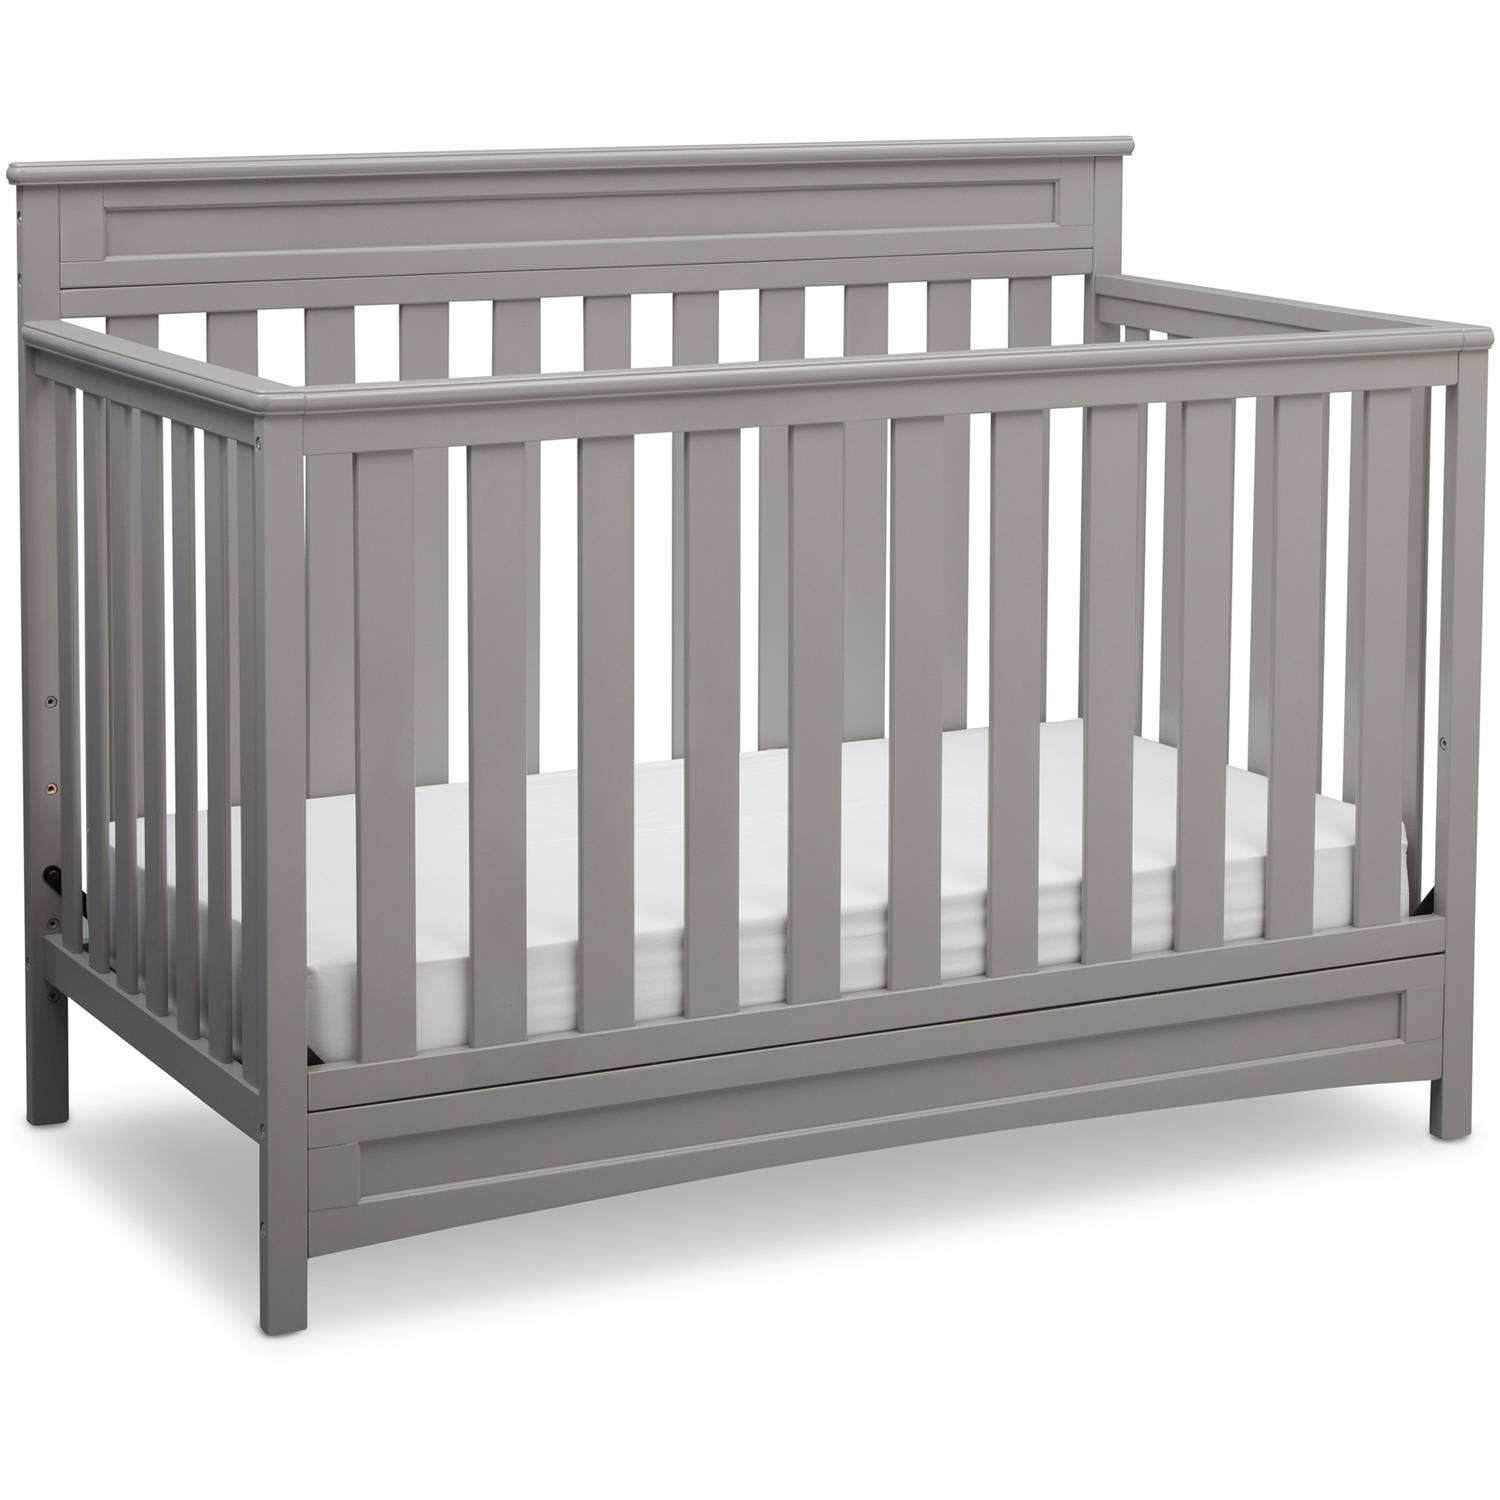 Delta Children Geneva 4-in-1 Convertible Crib Gray